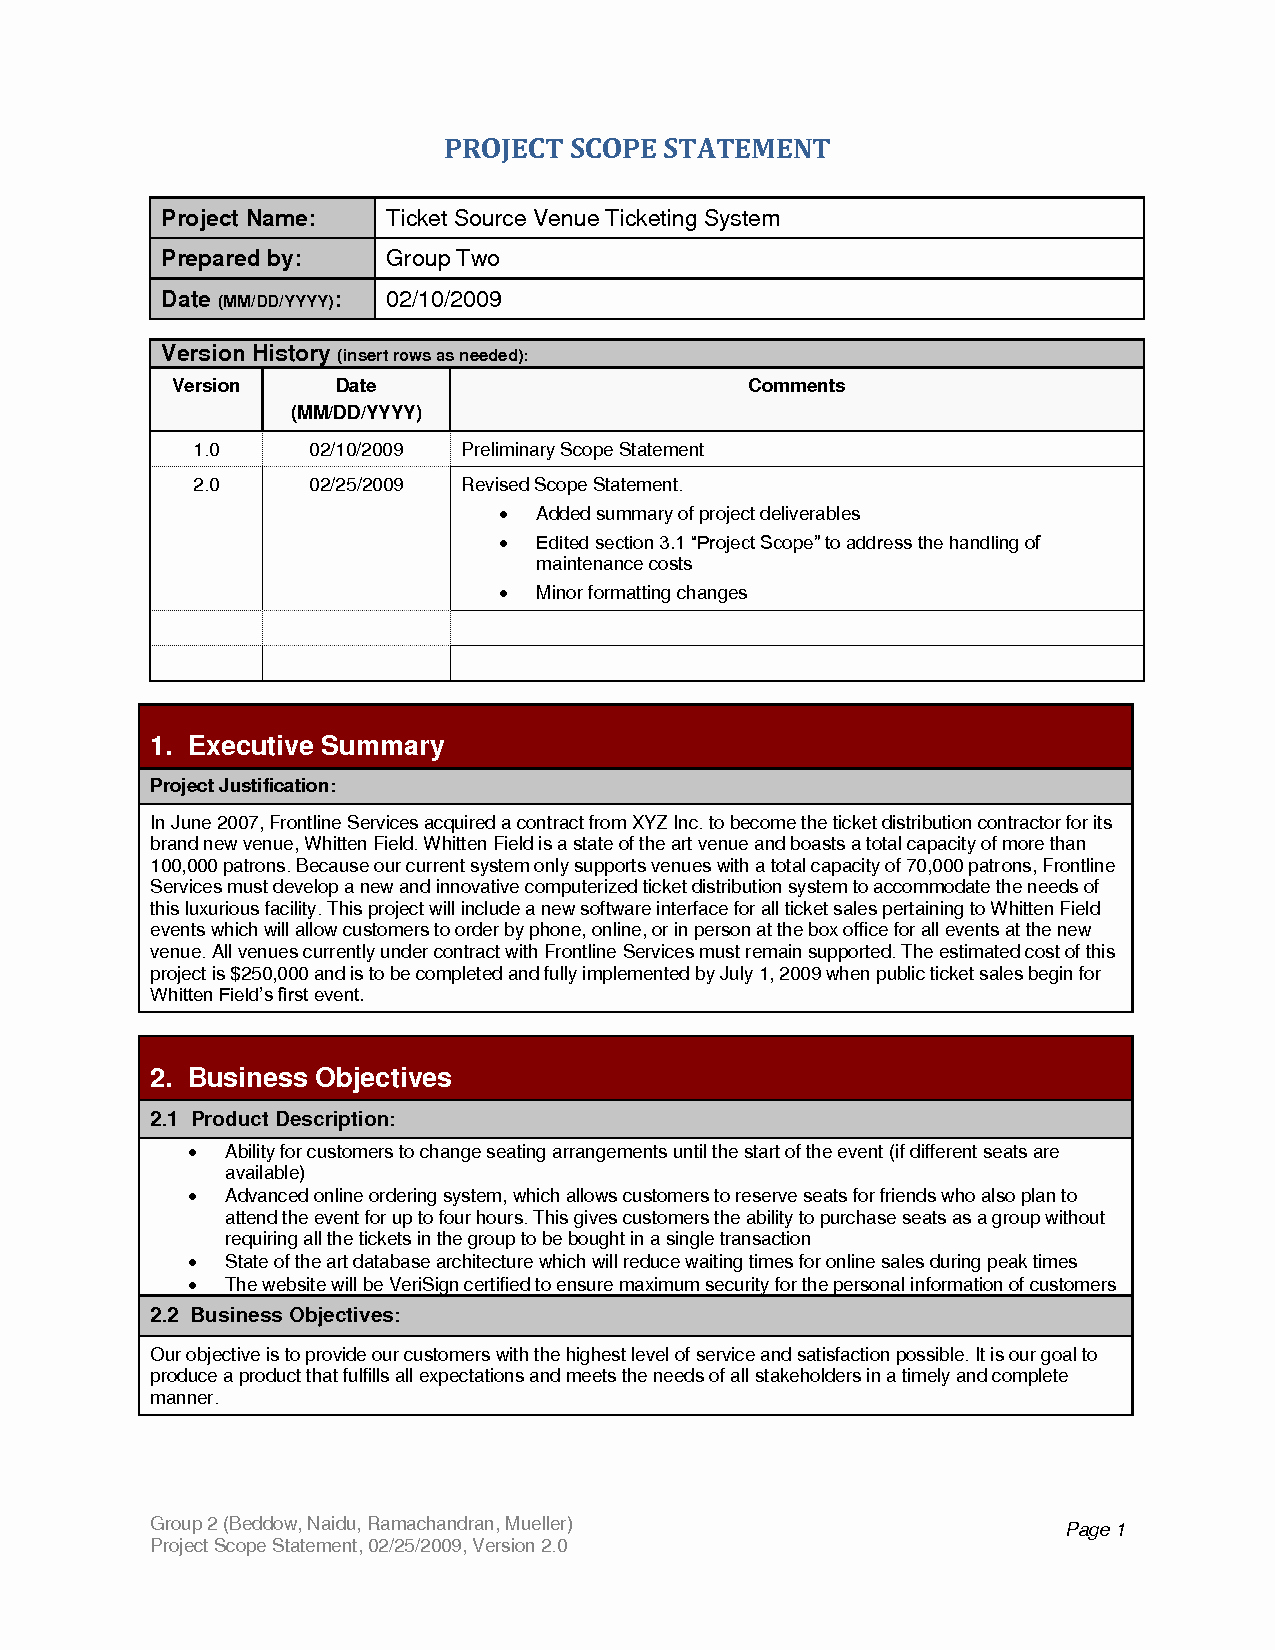 Project Scope Statement Template Luxury Project Scope Template